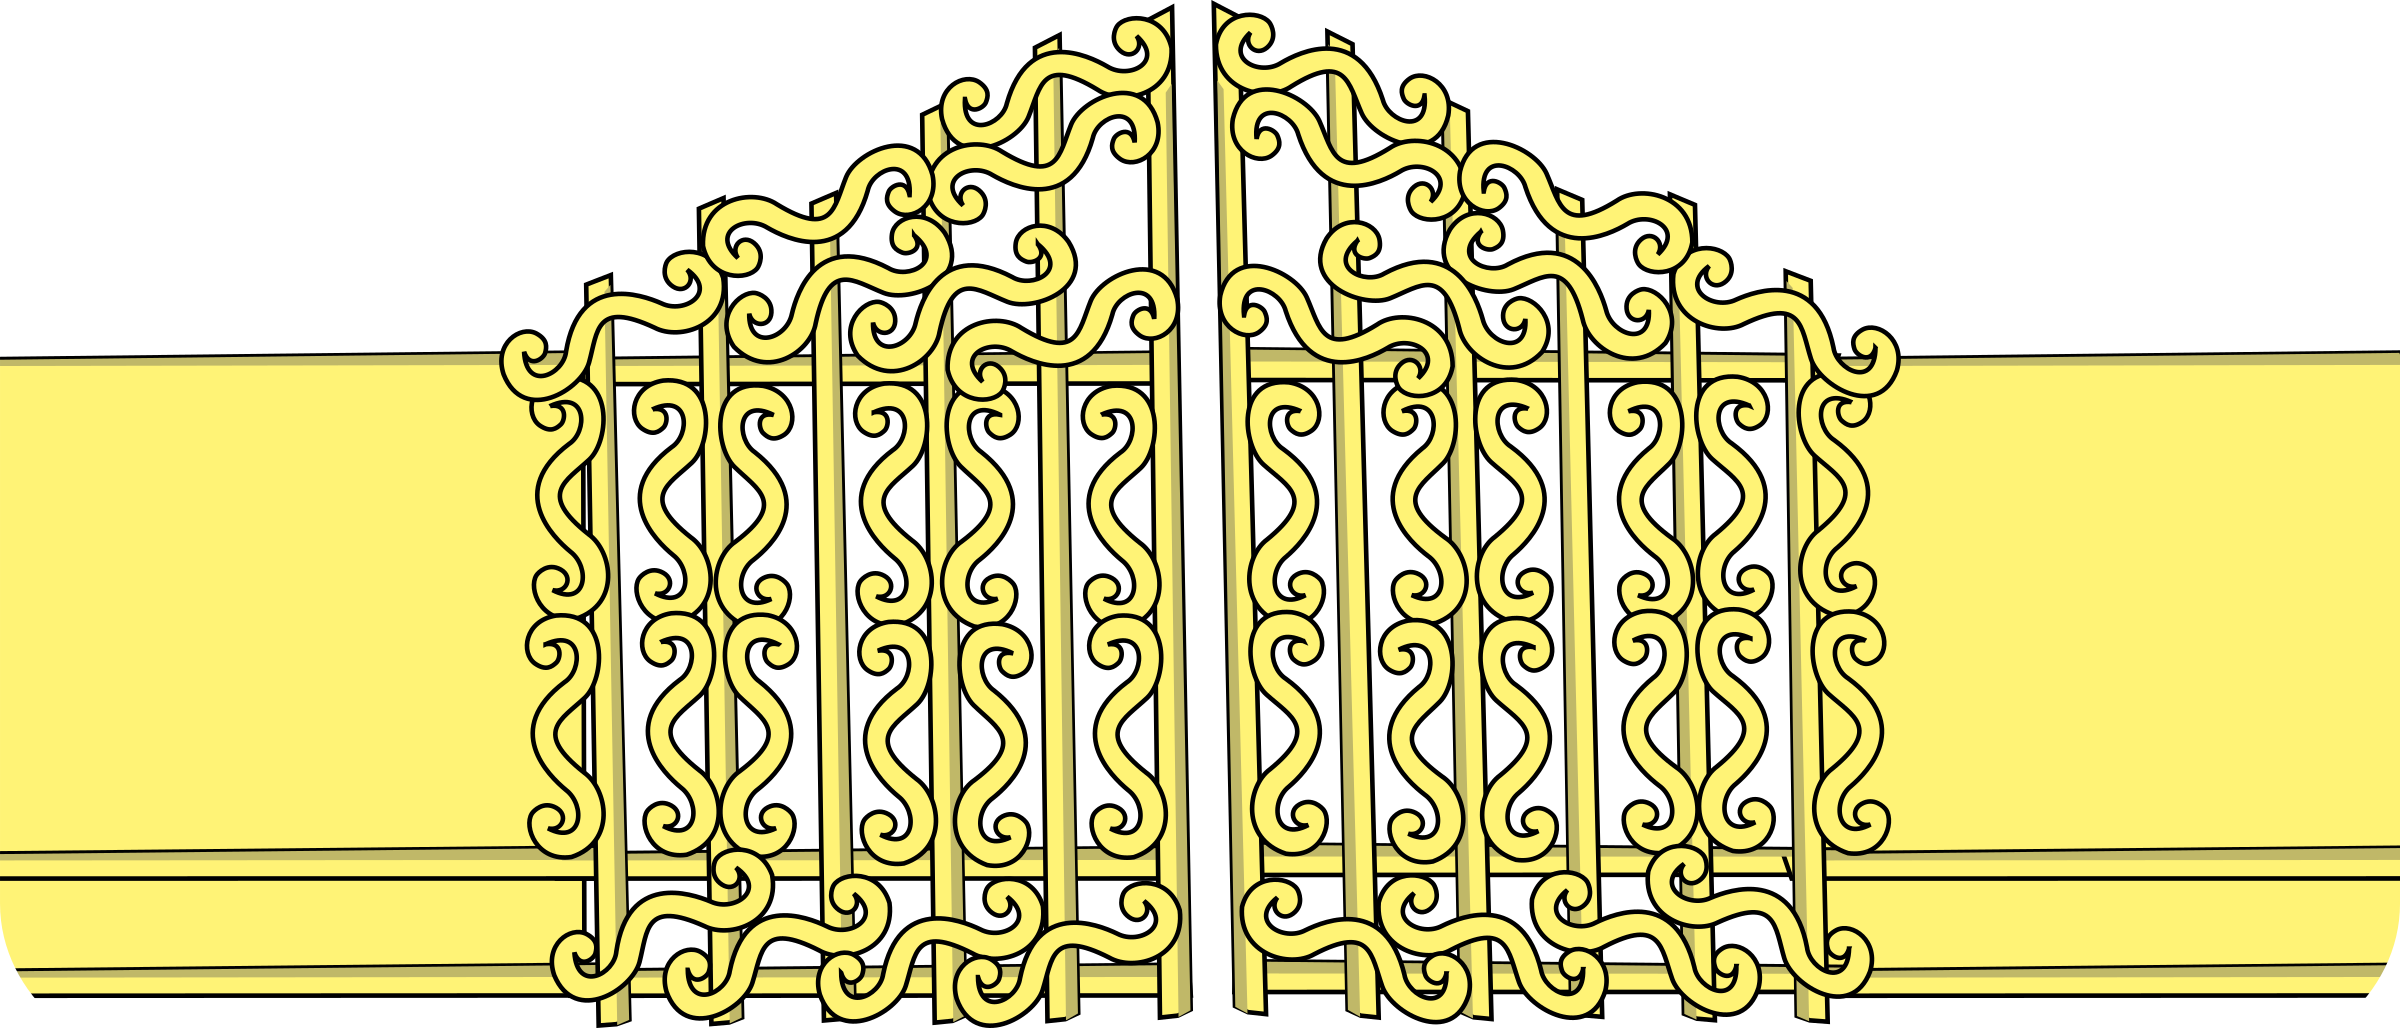 Pearly gates big image. Gate clipart iron gate